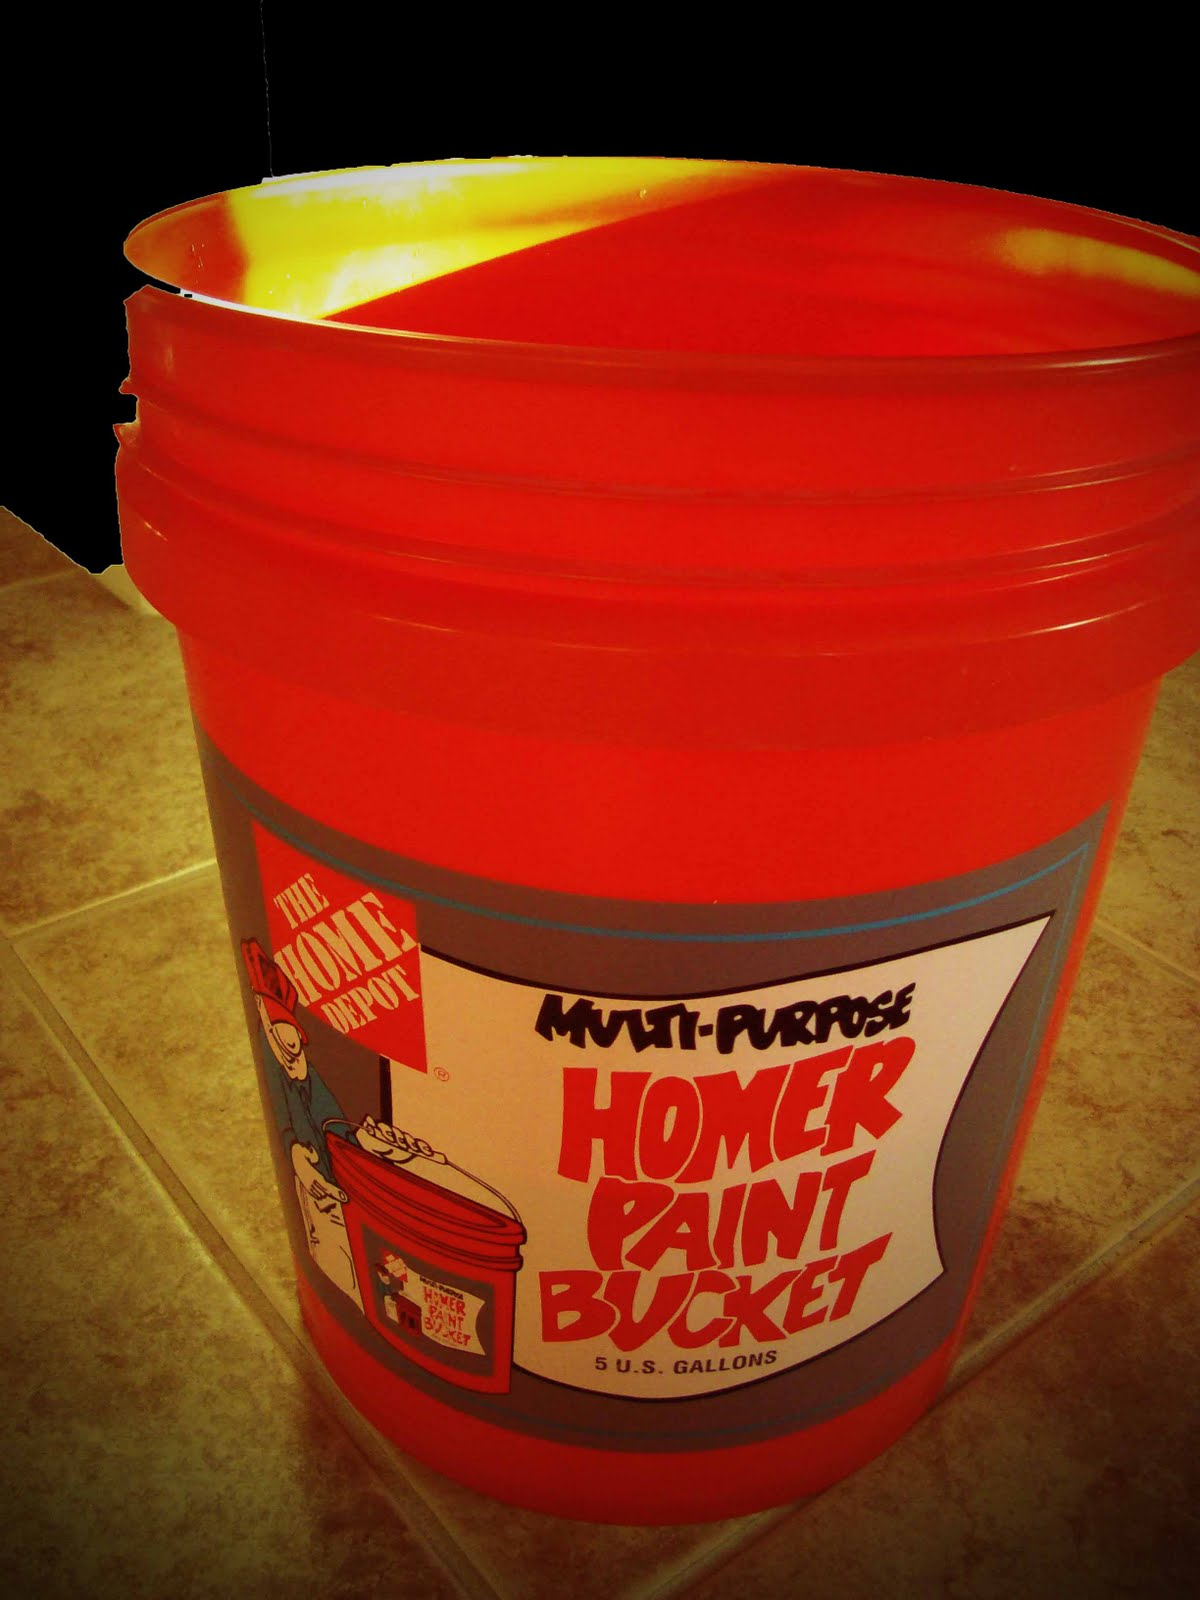 5 Gallon Bucket Home Depot Simply Domestic Me Homemade Liquid Laundry Detergent